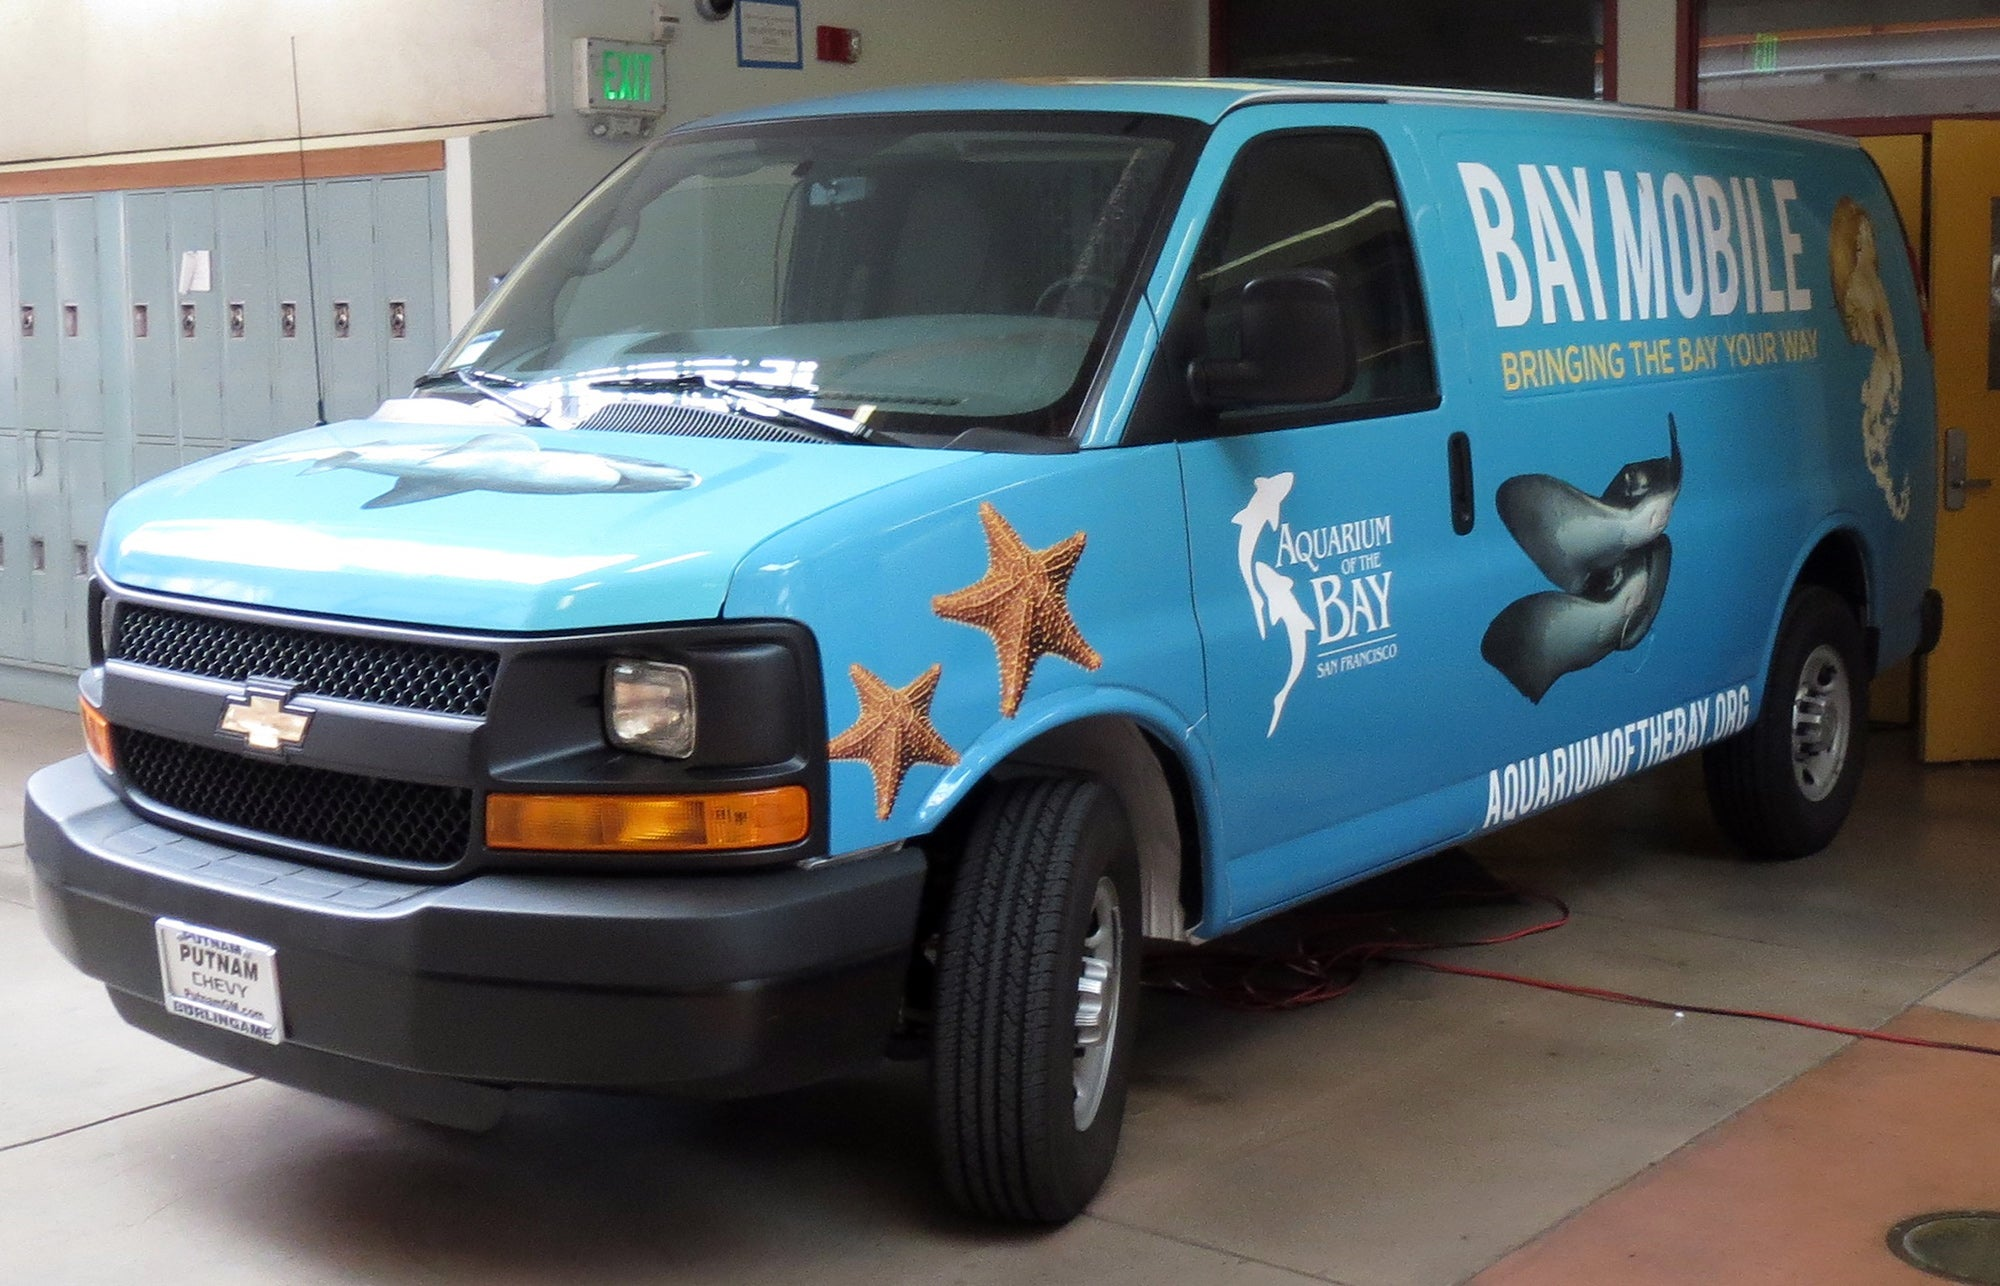 The BayMobile van is ready to roll.